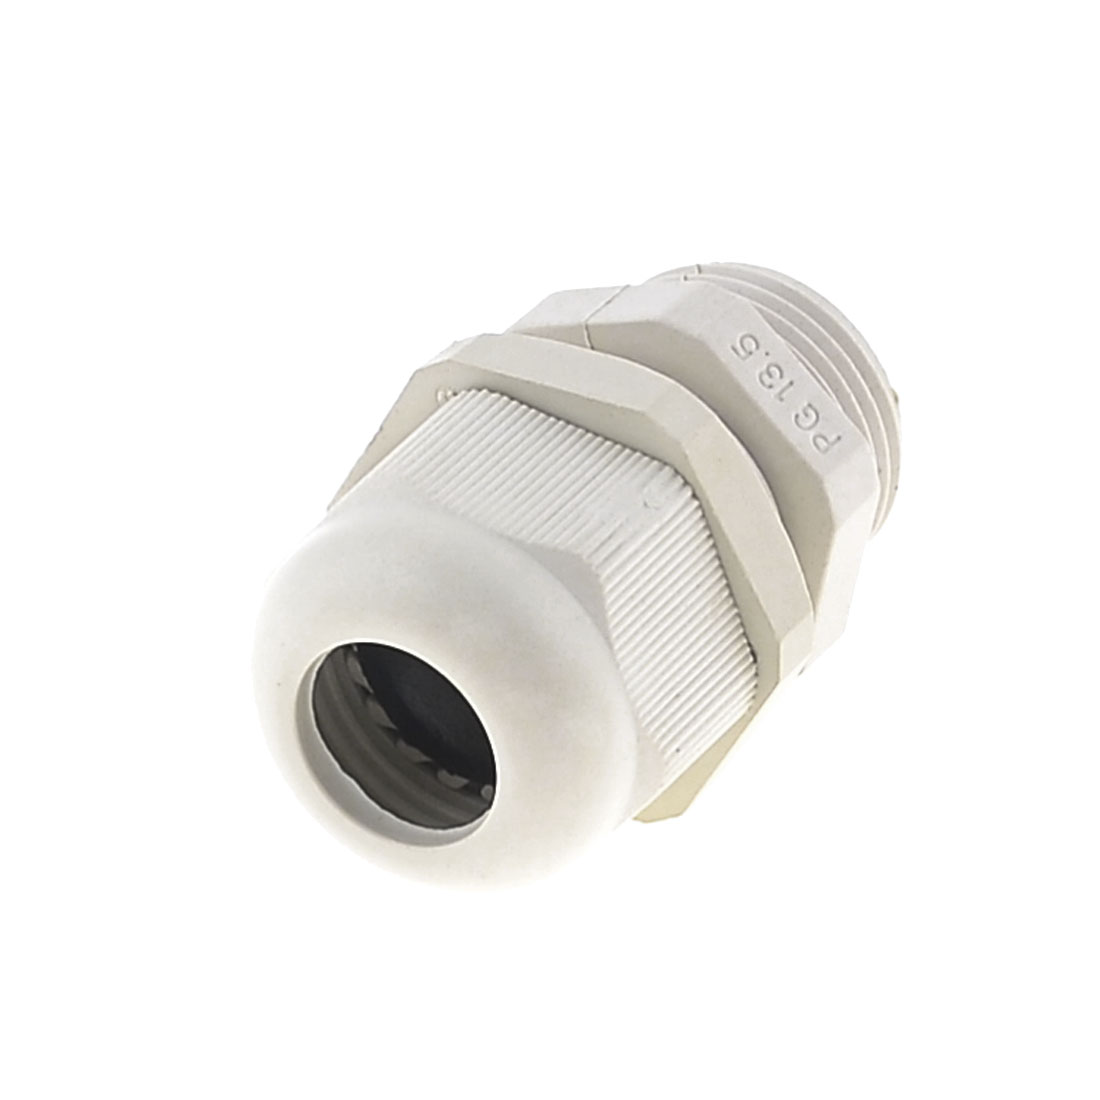 Beige Plastic PG13.5 Waterproof 6mm to 12mm Cable Gland Fastener